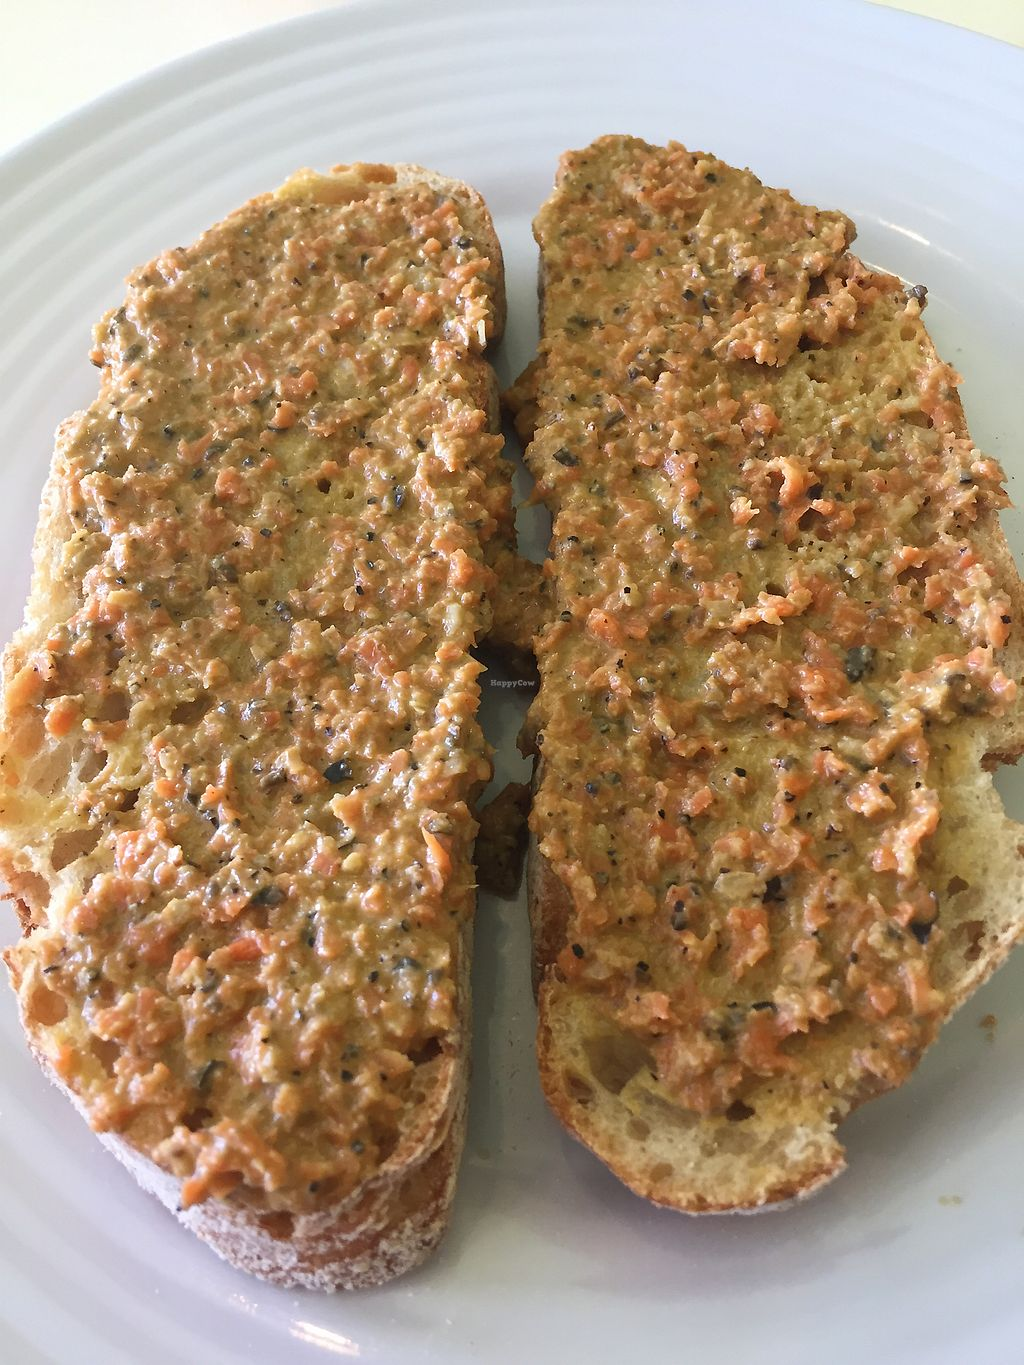 """Photo of Mama Says  by <a href=""""/members/profile/R-MV"""">R-MV</a> <br/>Carrot garlic bread  <br/> October 10, 2017  - <a href='/contact/abuse/image/85209/314093'>Report</a>"""